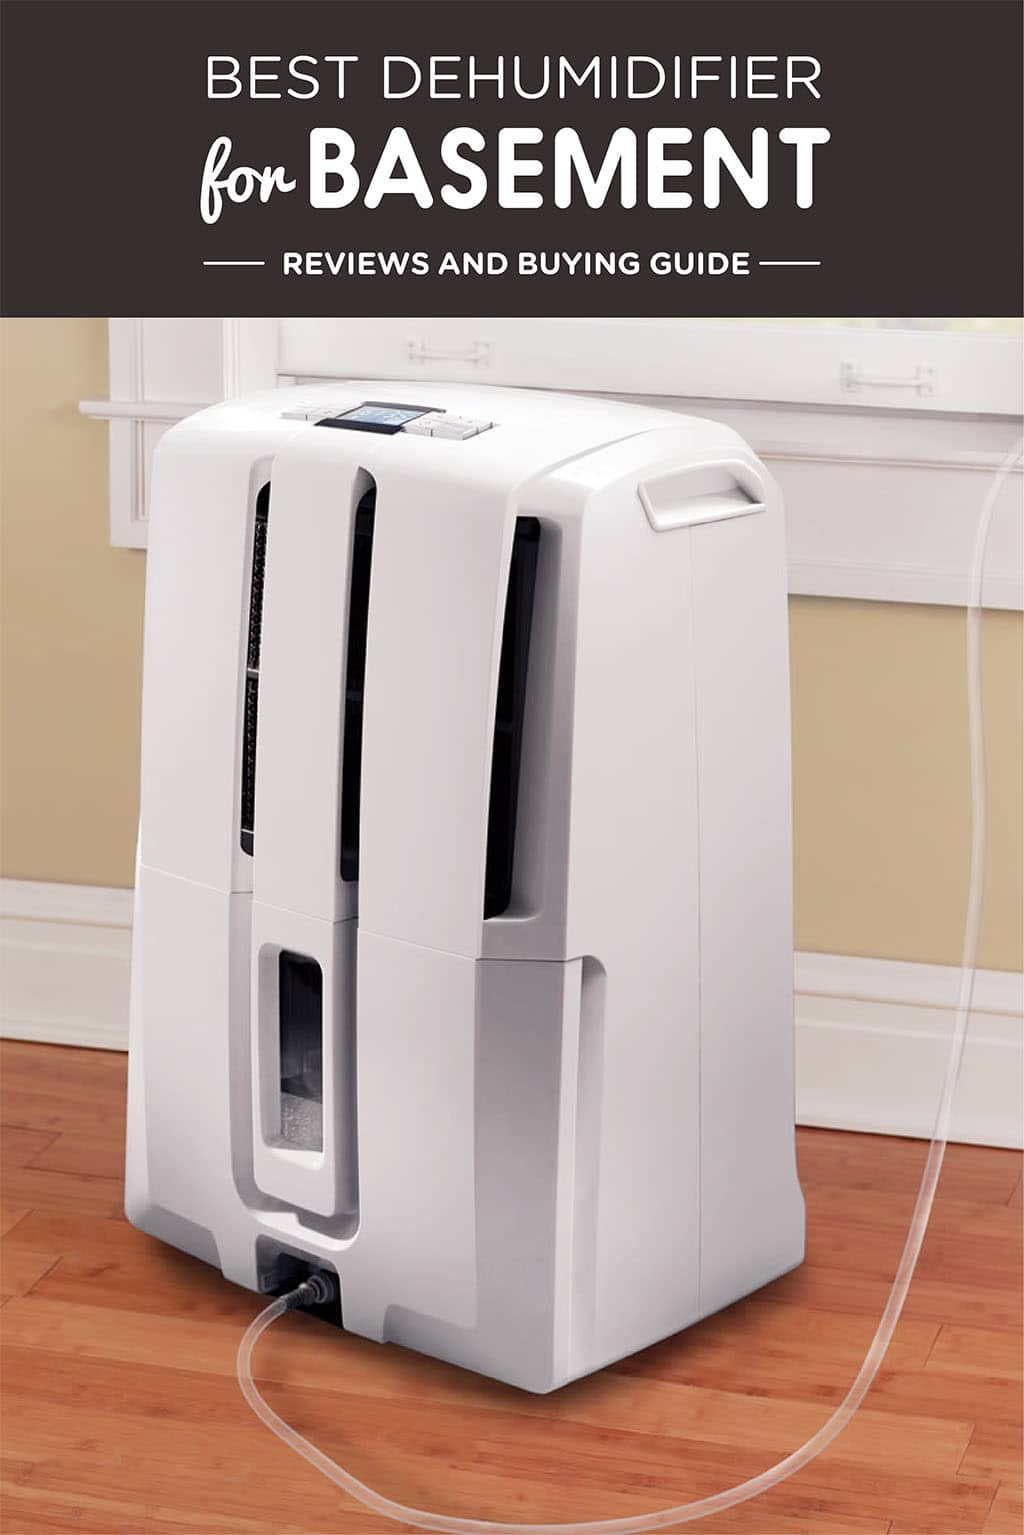 Best Dehumidifier for Basement - Reviews and Guide 2017